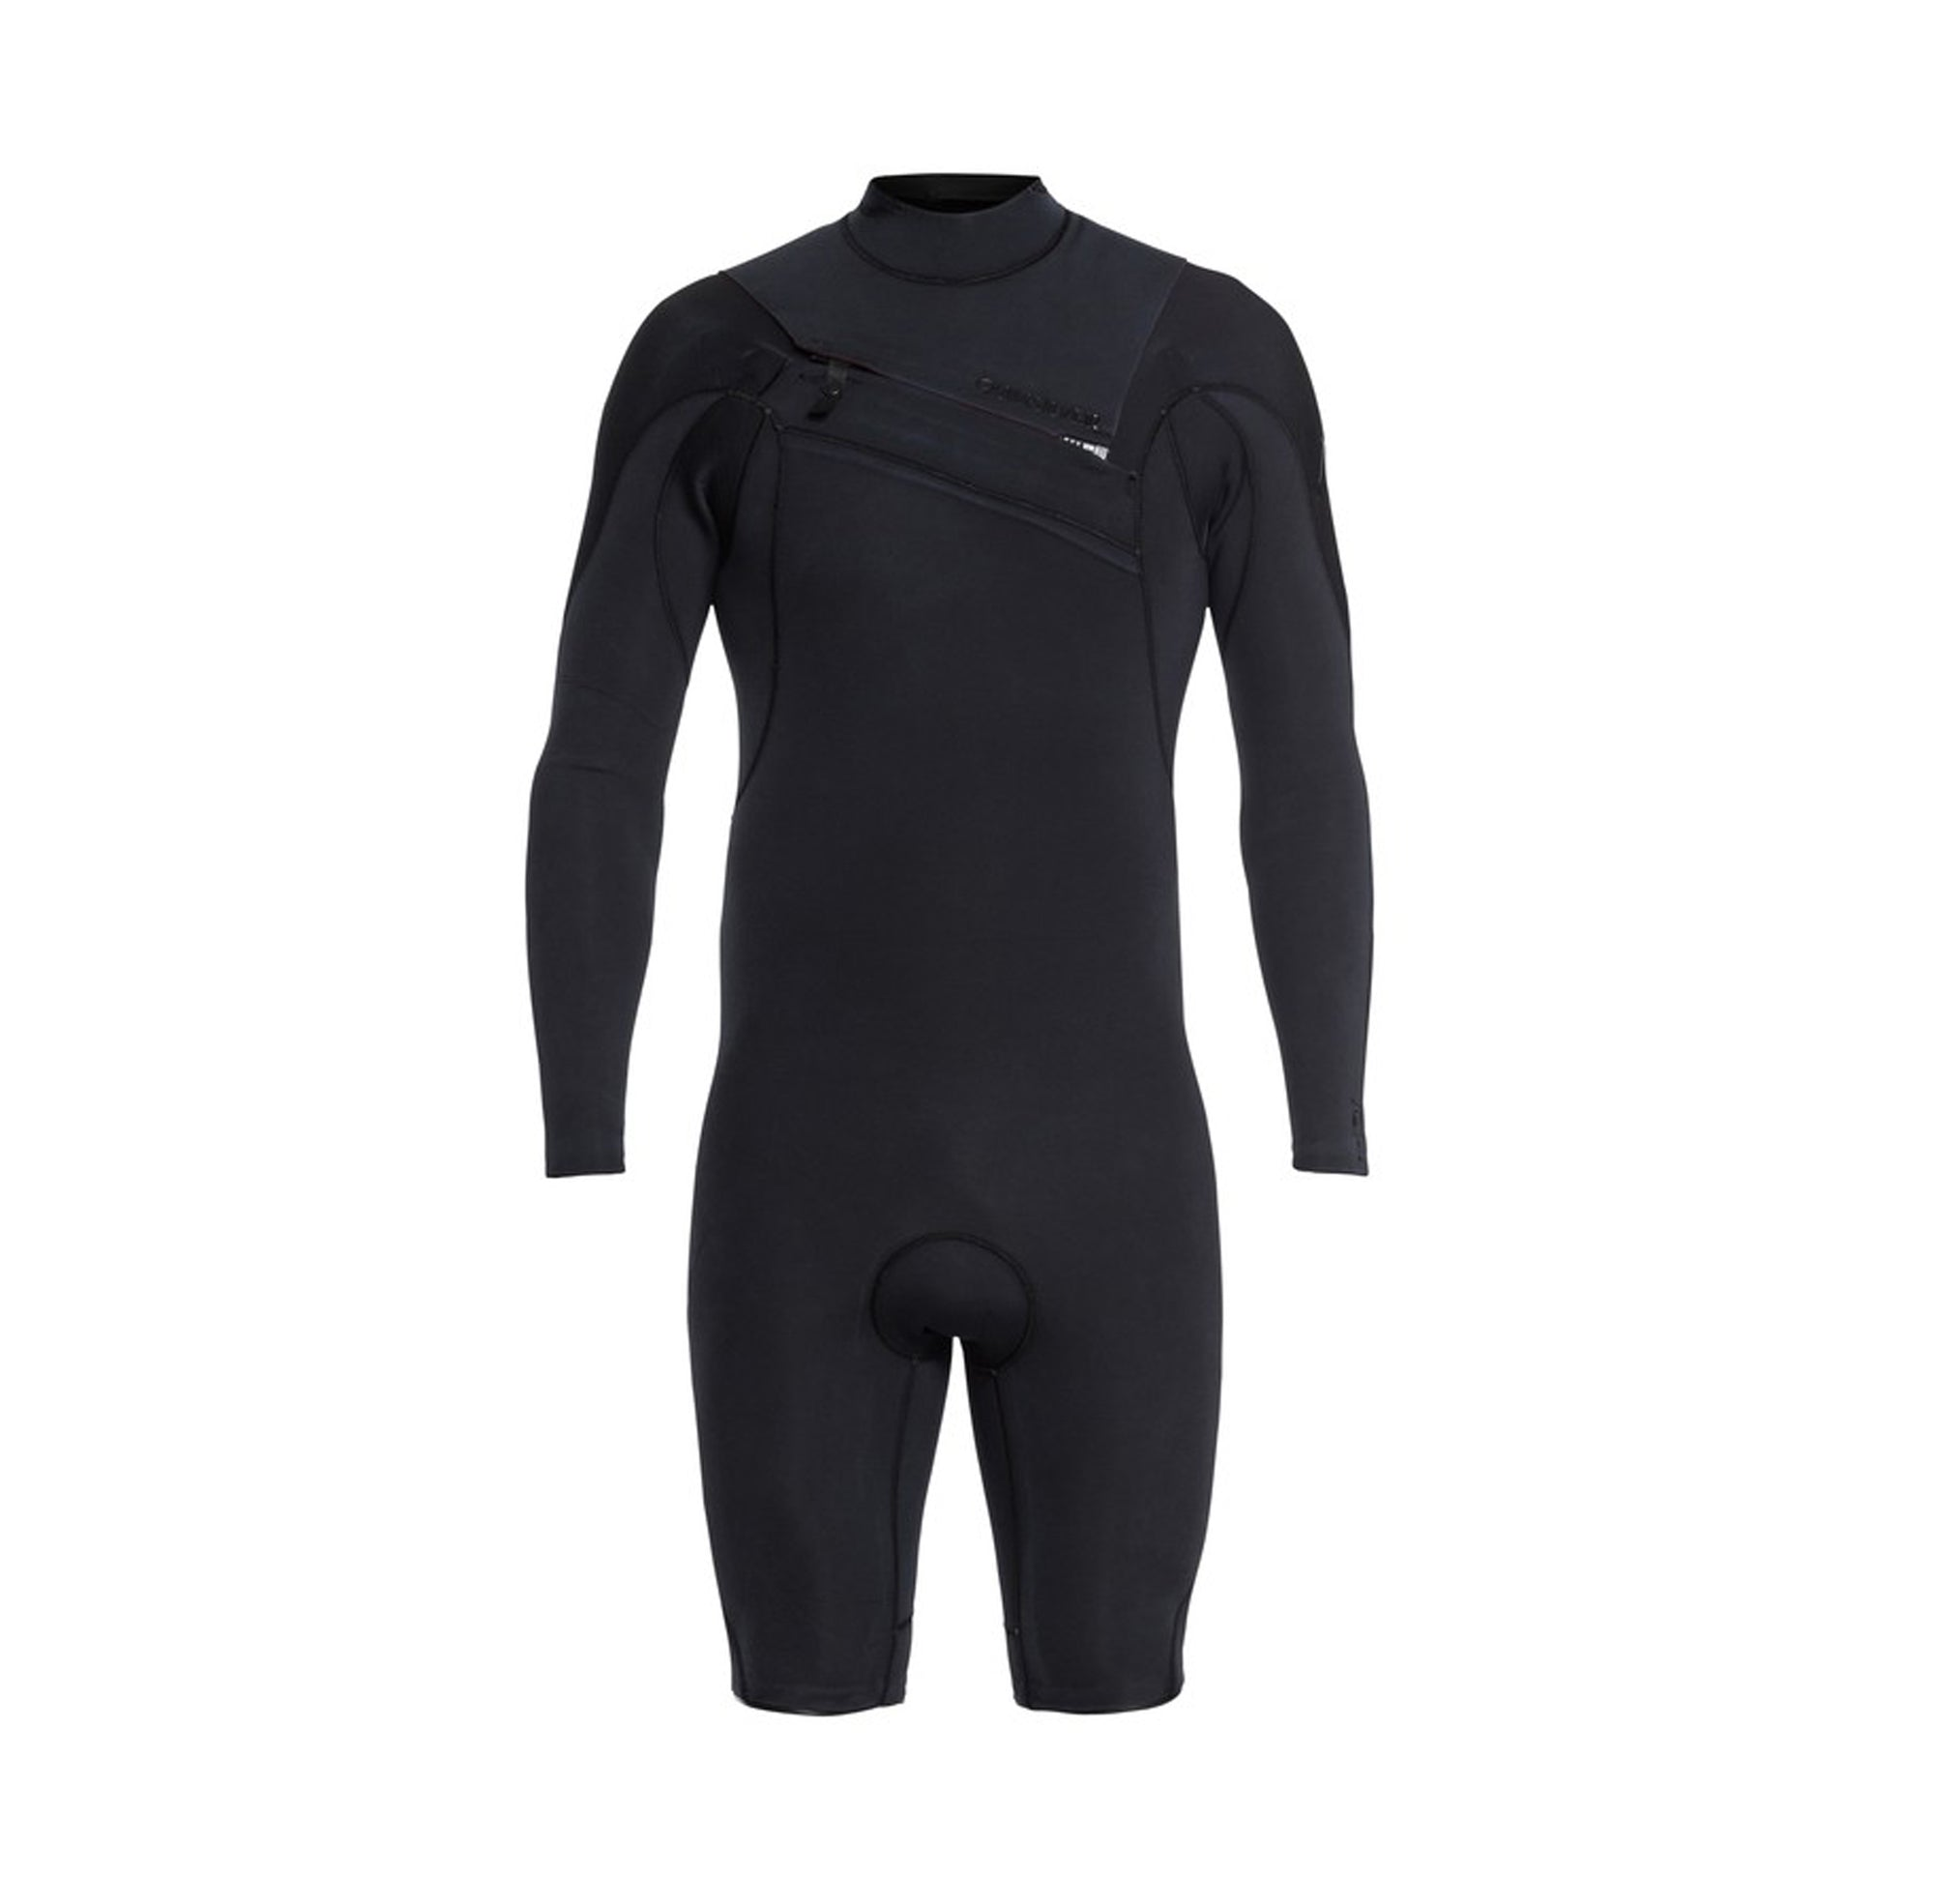 Quiksilver Men's 2/2mm Highline Limited Long Sleeve Chest Zip Springsuit Black Front